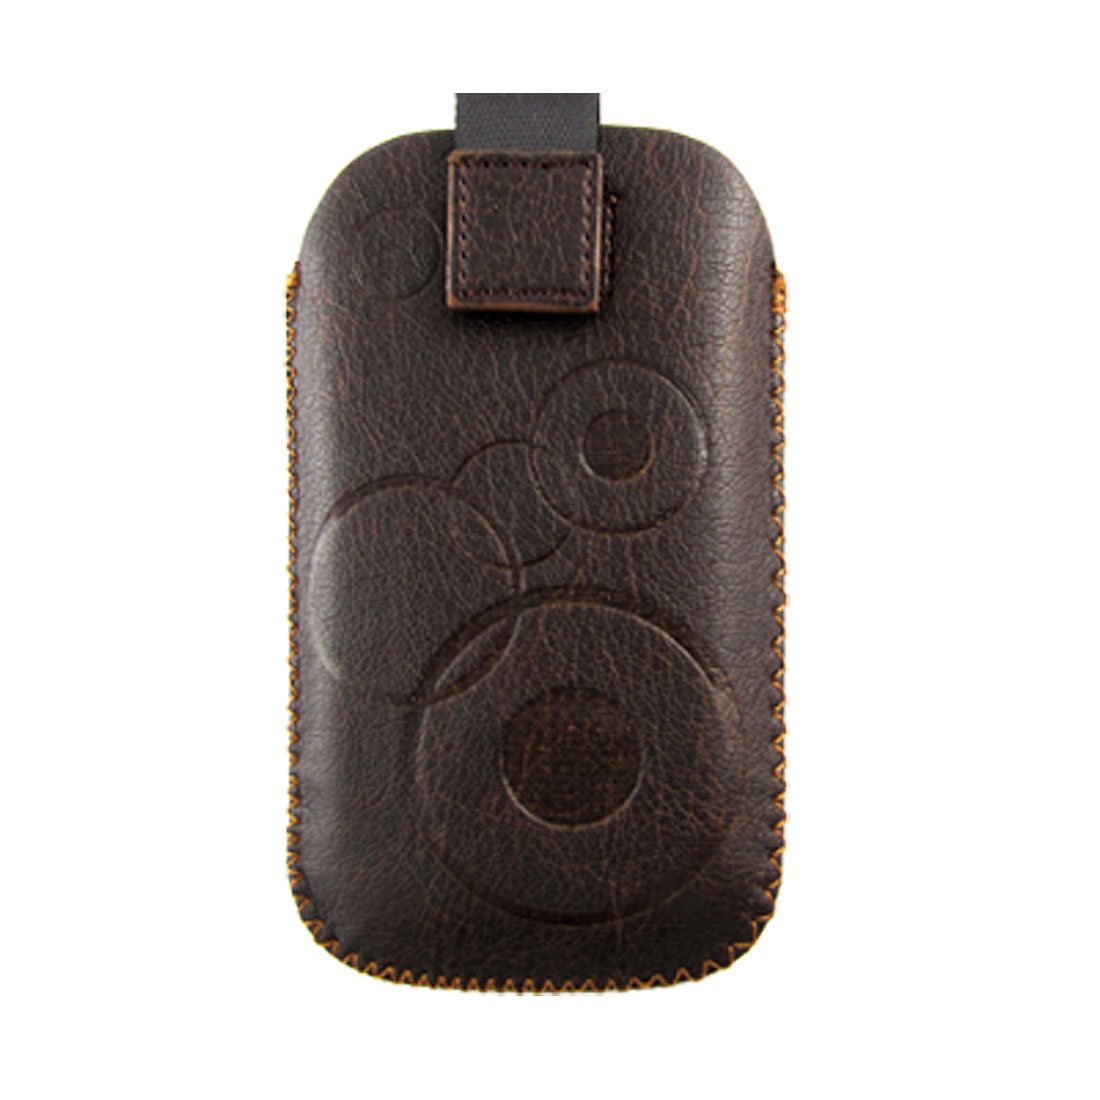 Brown Faux Leather Pull Tab Up Pouch Case for Nokia 5800